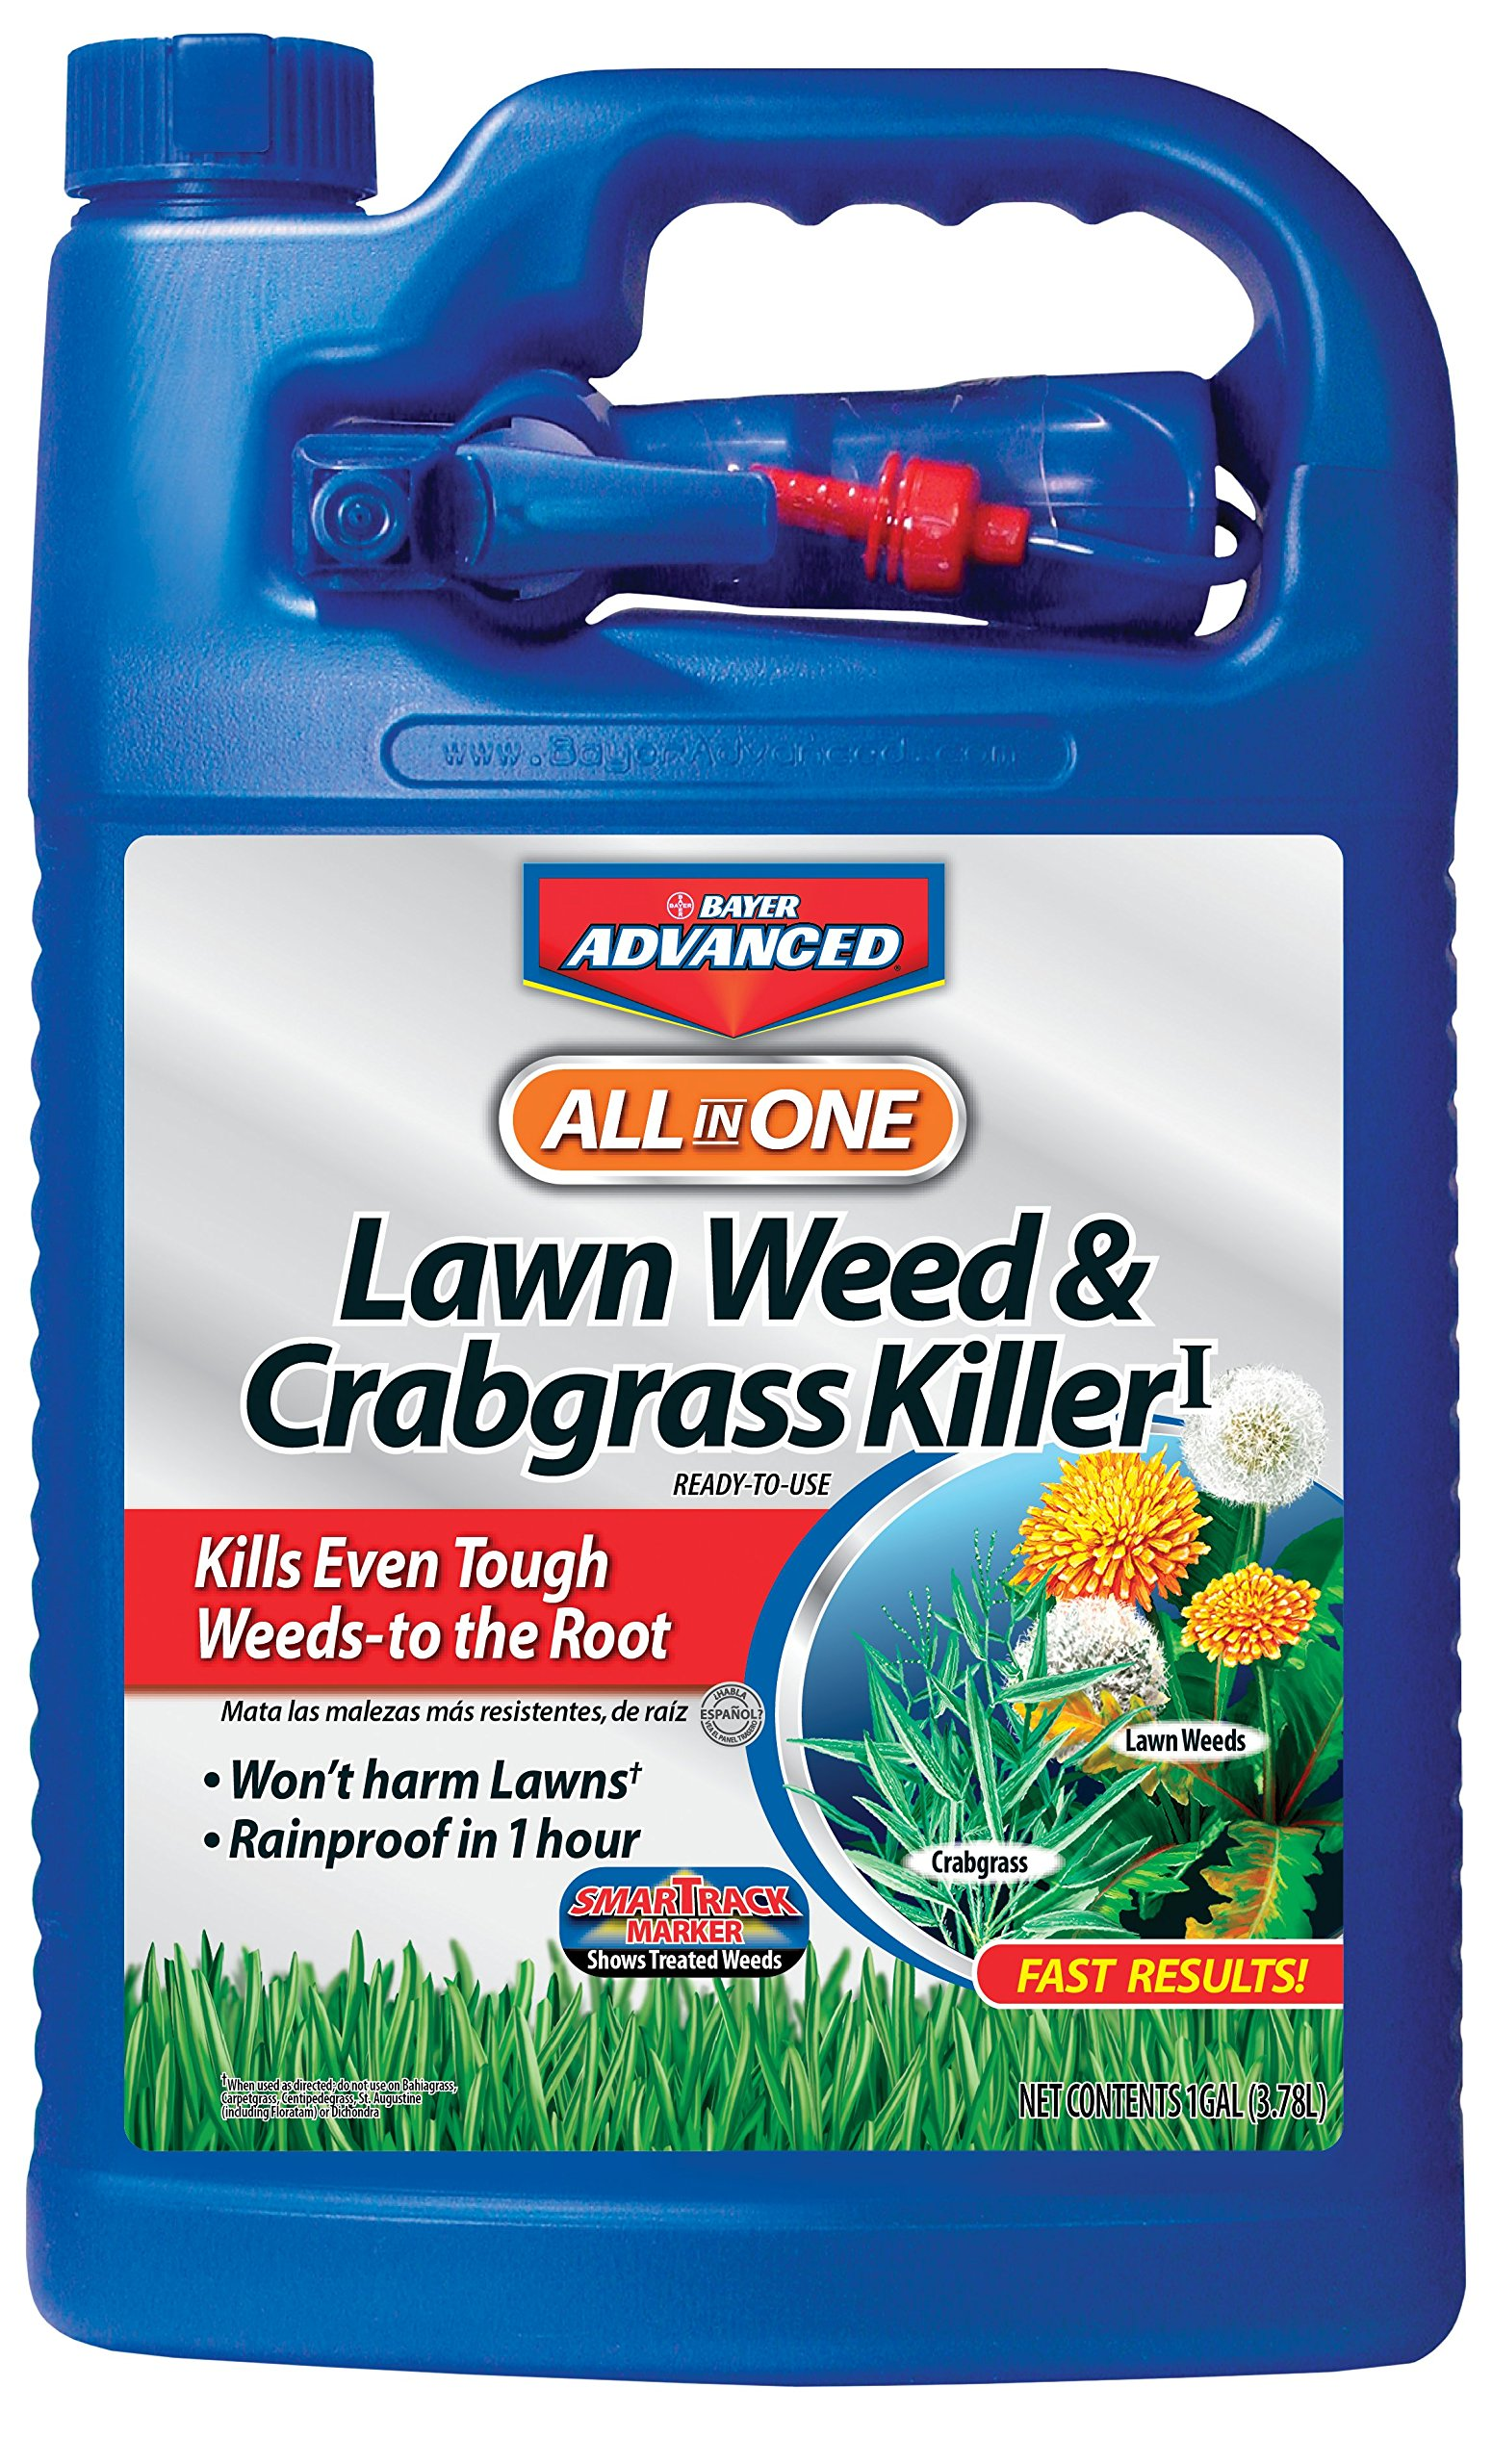 Bayer Advanced 704130 All-in-One Lawn Weed and Crabgrass Killer Ready-To-Use, 1-Gallon by Bayer Advanced